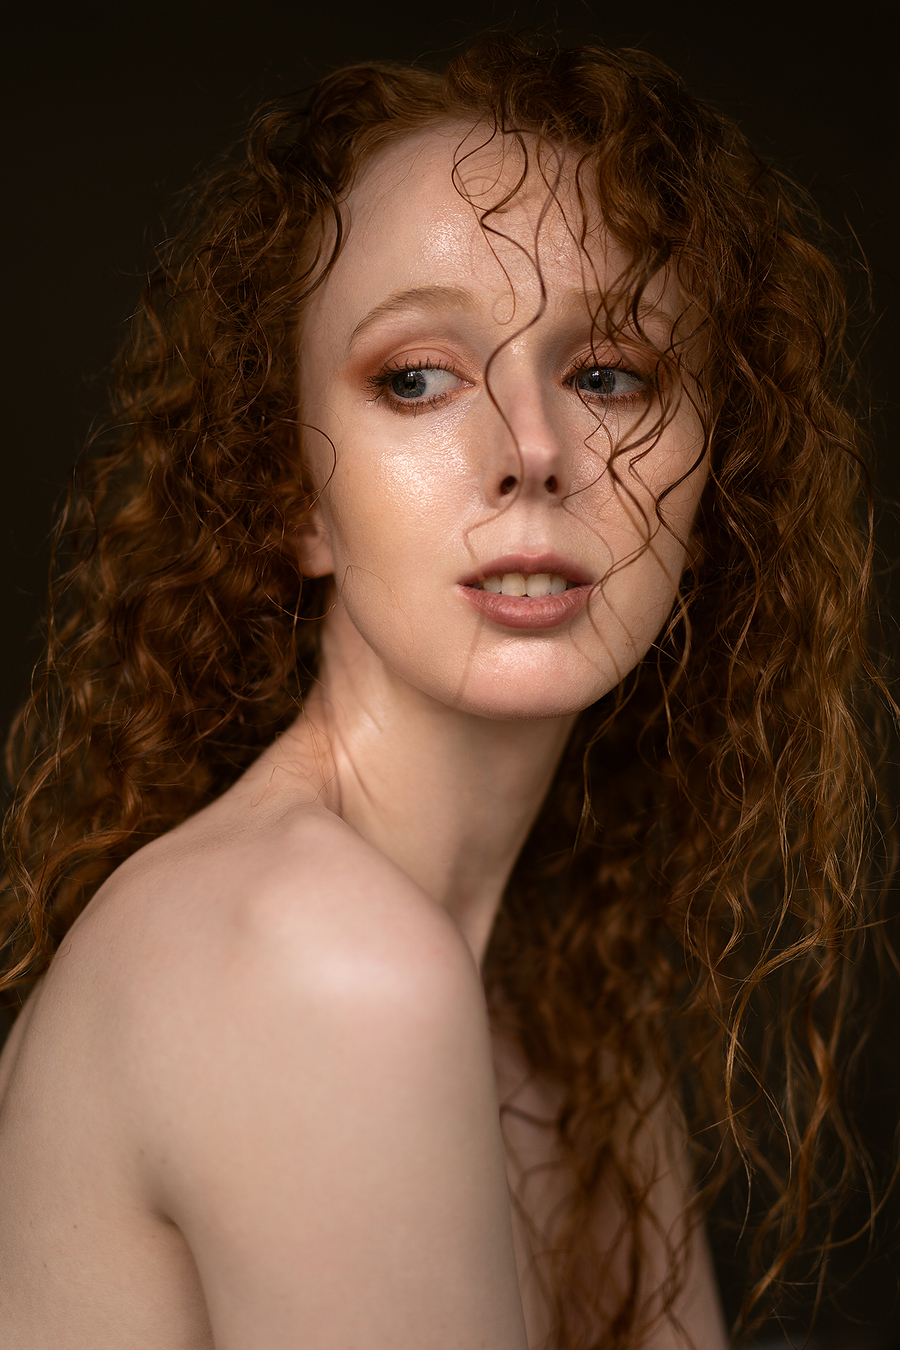 Photography by Lena Selkin Photography, Model Gem / Uploaded 20th April 2021 @ 03:50 PM